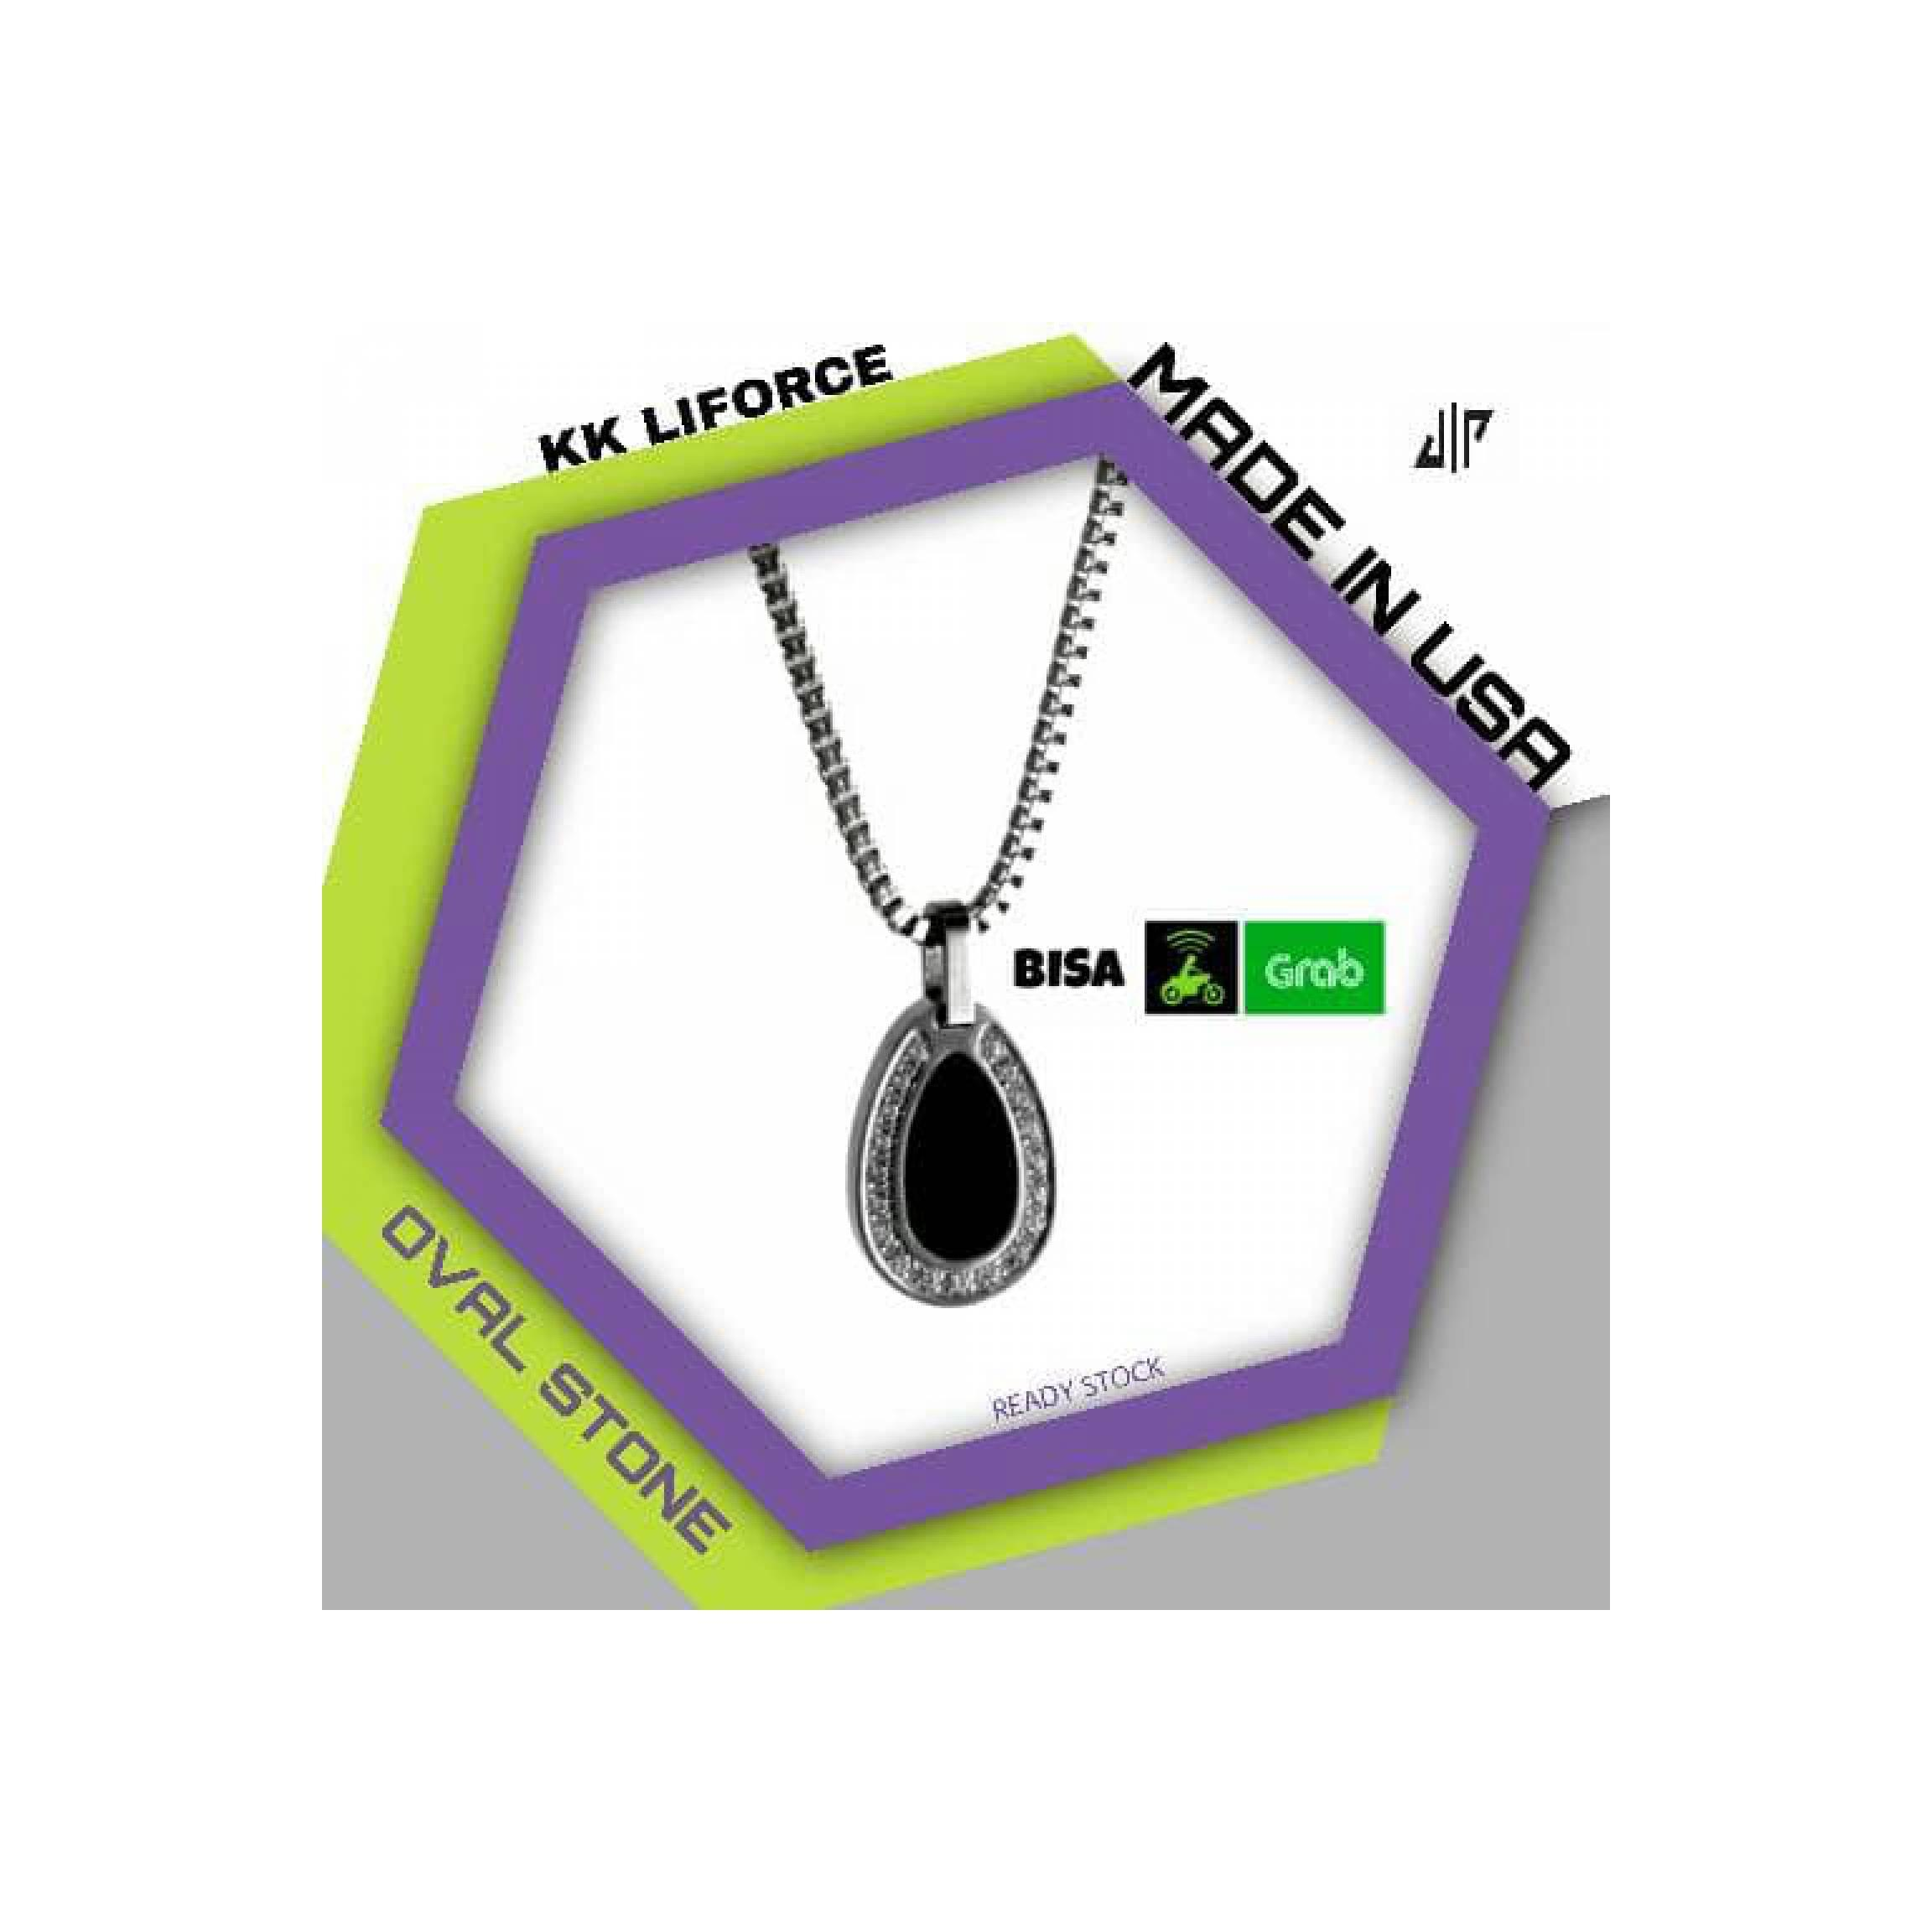 Kalung Kesehatan KK Liforce Oval Stone Original - Ready Stock